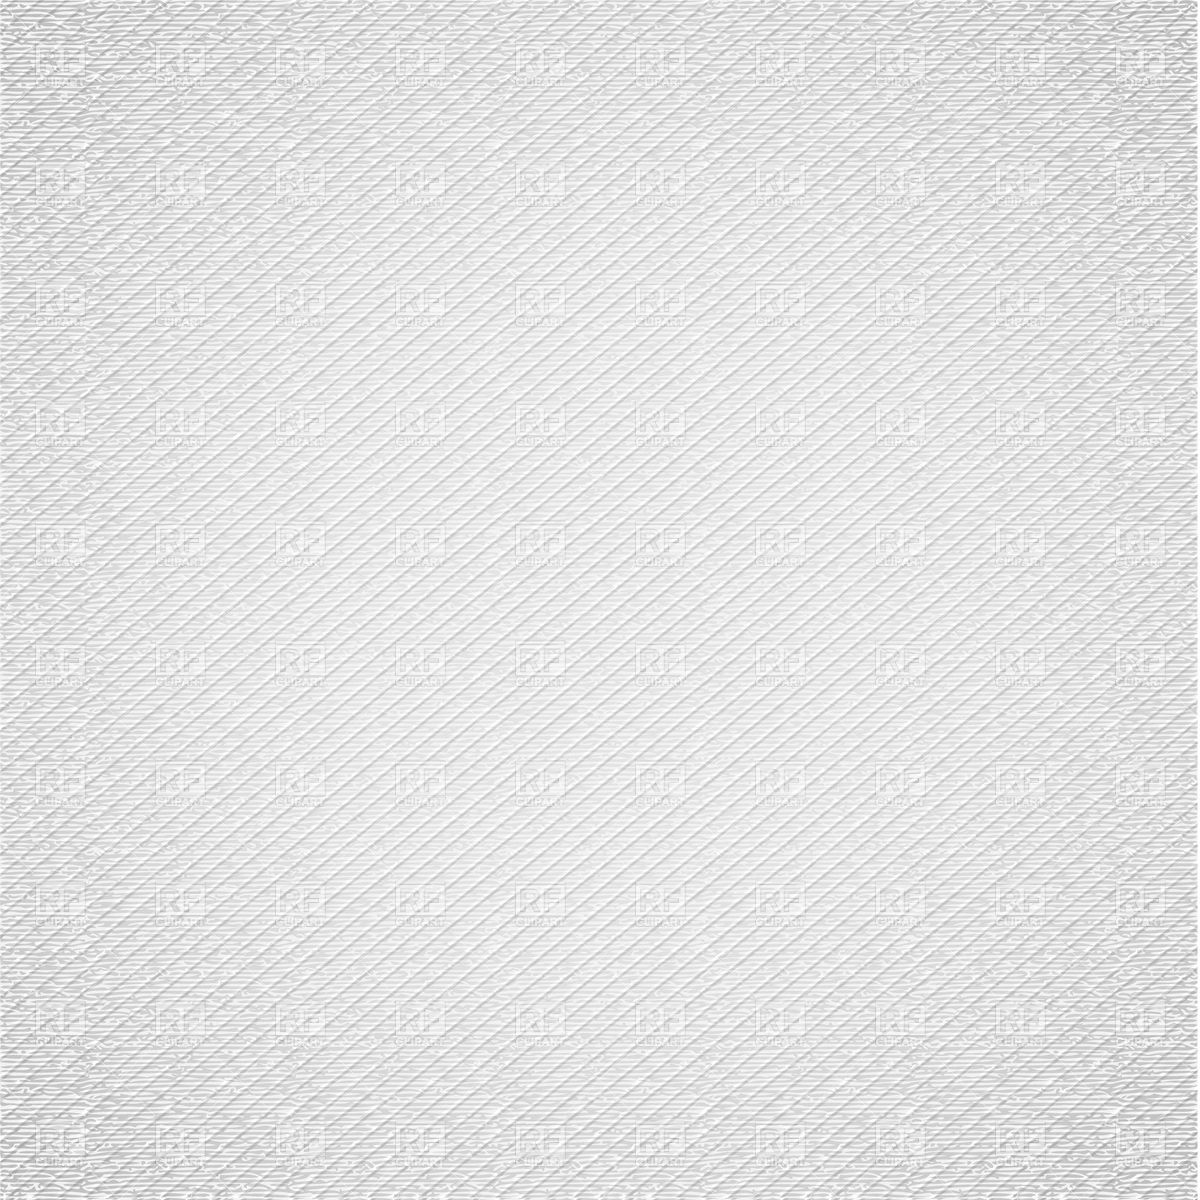 Light gray striped cardboard background Vector Image #18542.